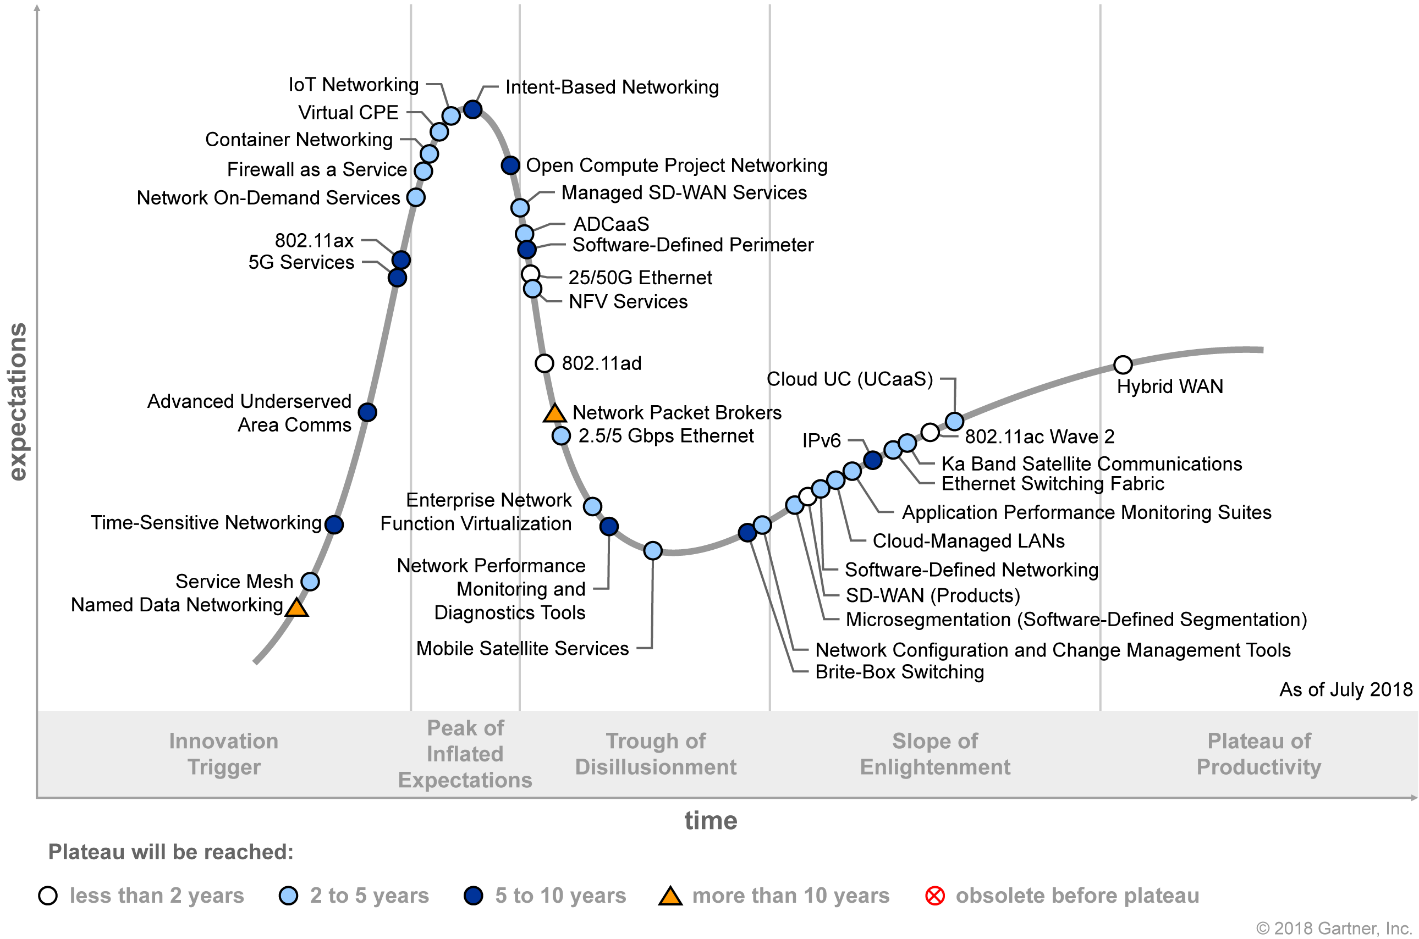 Gartner Hype Cycle for Enterprise Networking and Communications 2018 (G00338722)